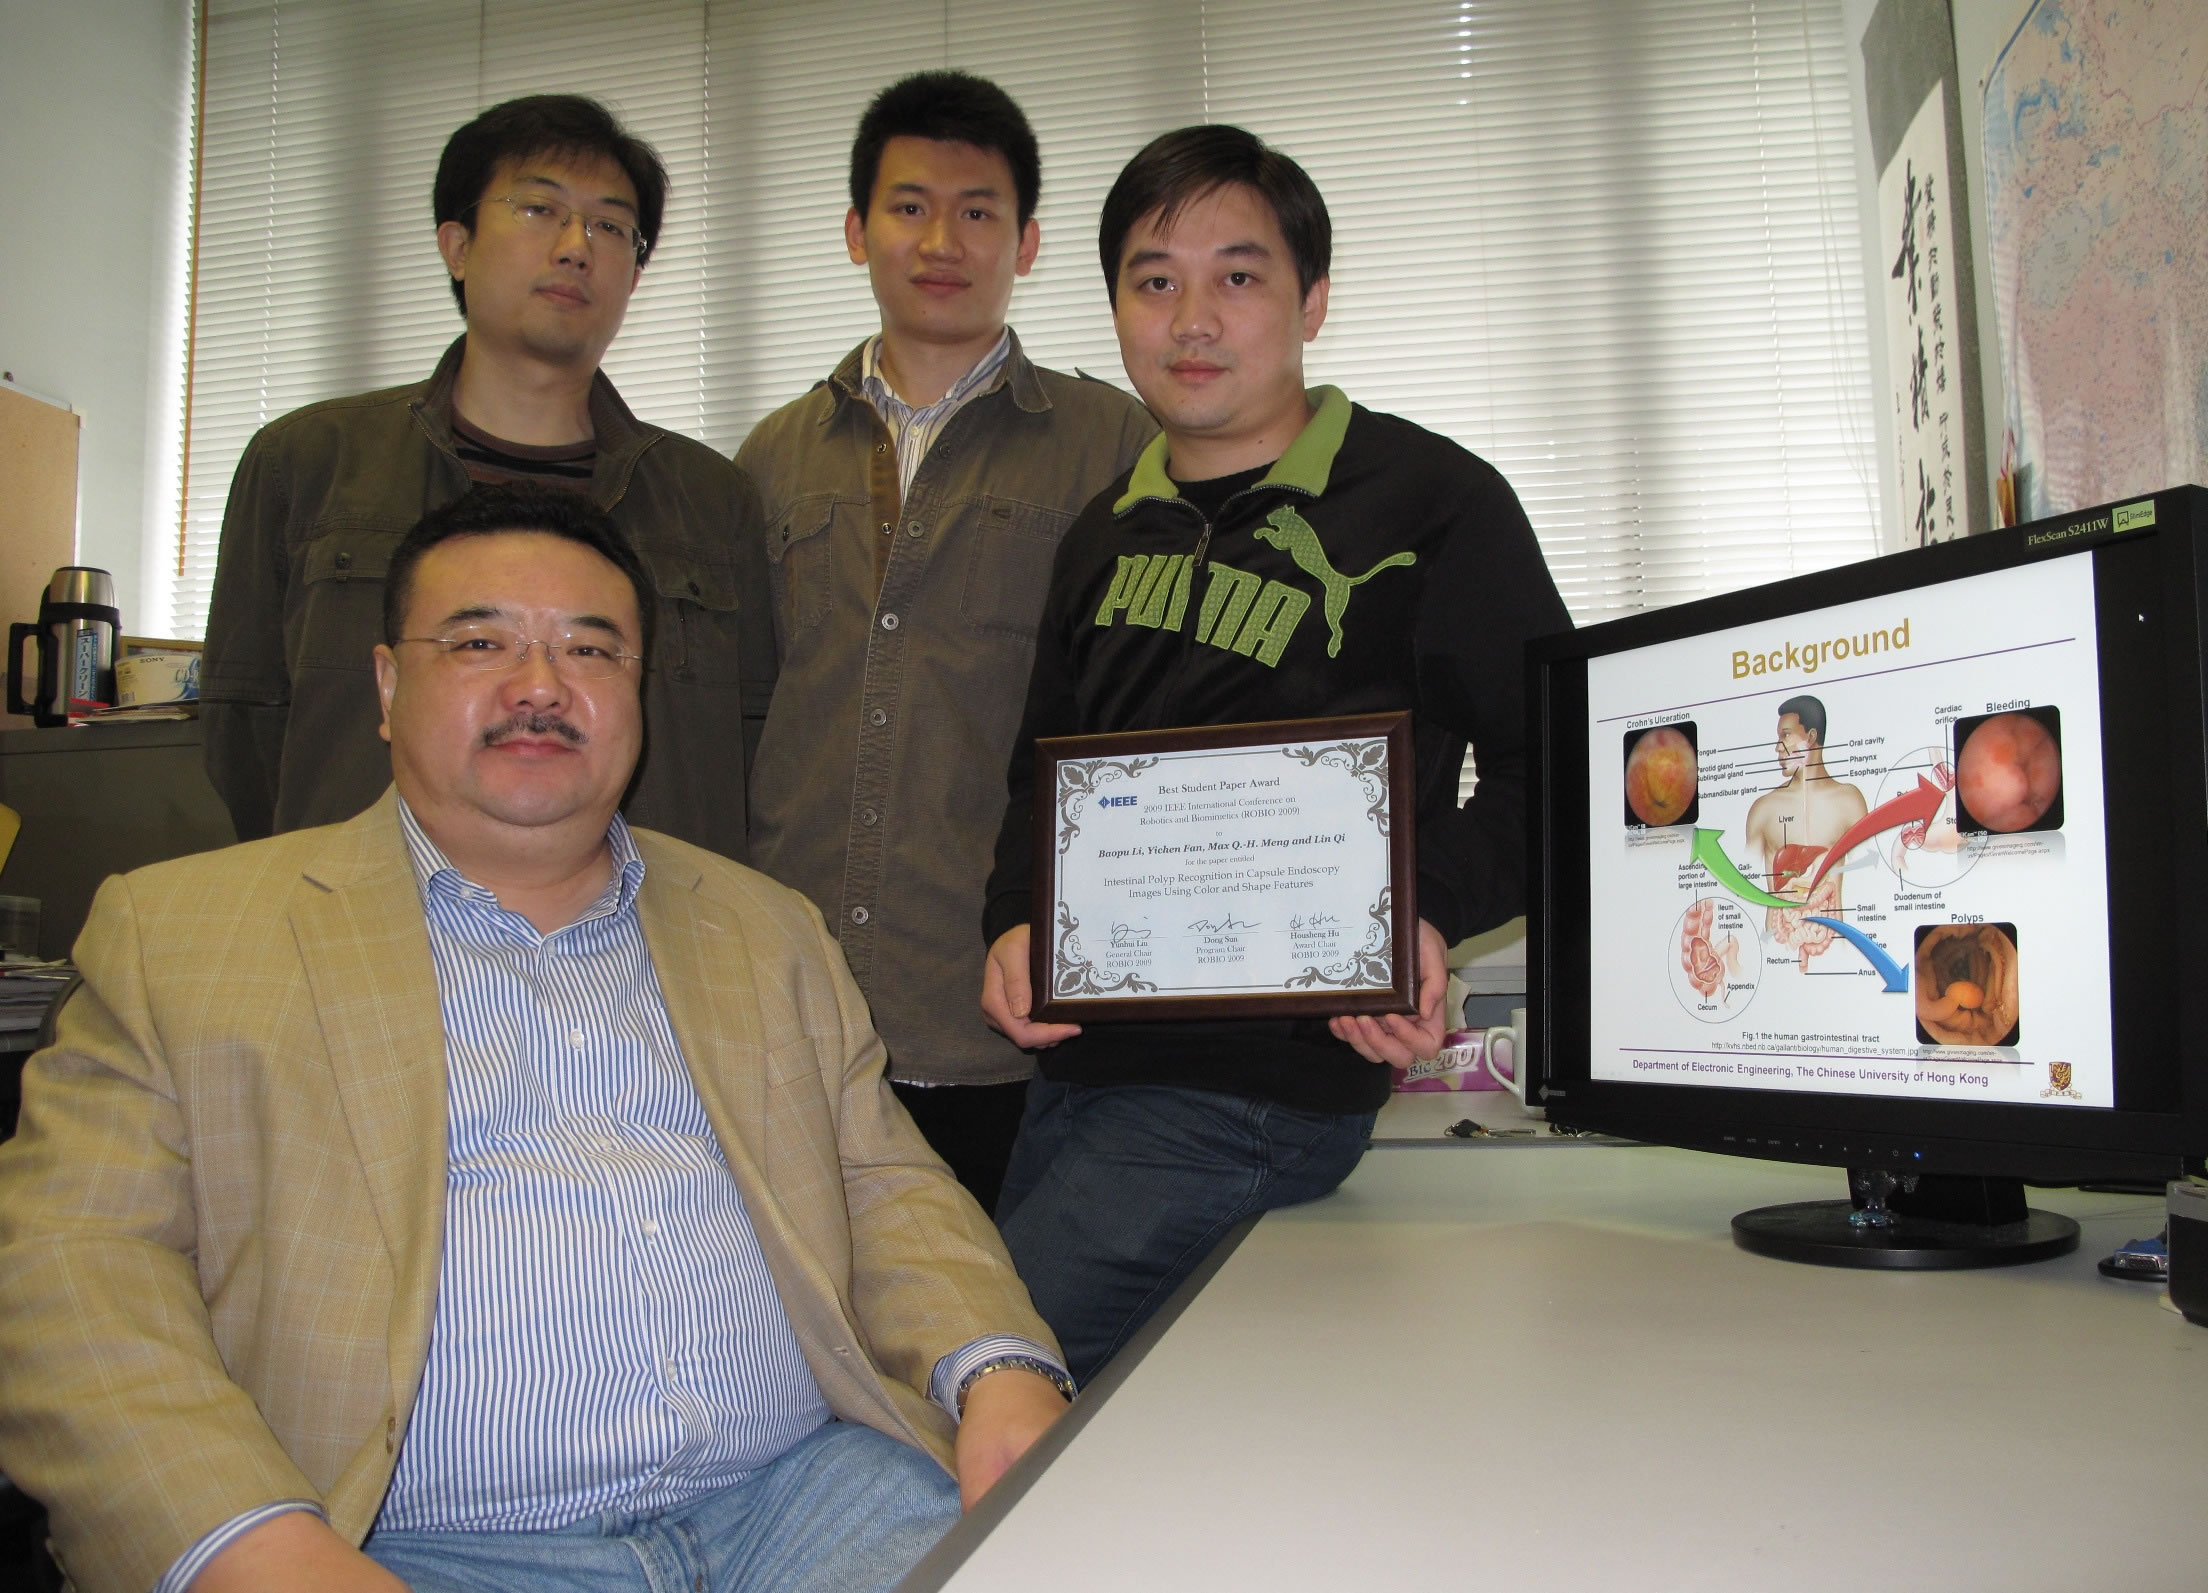 Prof. Max Meng and his PhD students (from left): Lin Qi, Simon Yichen Fan, and Baopu Li